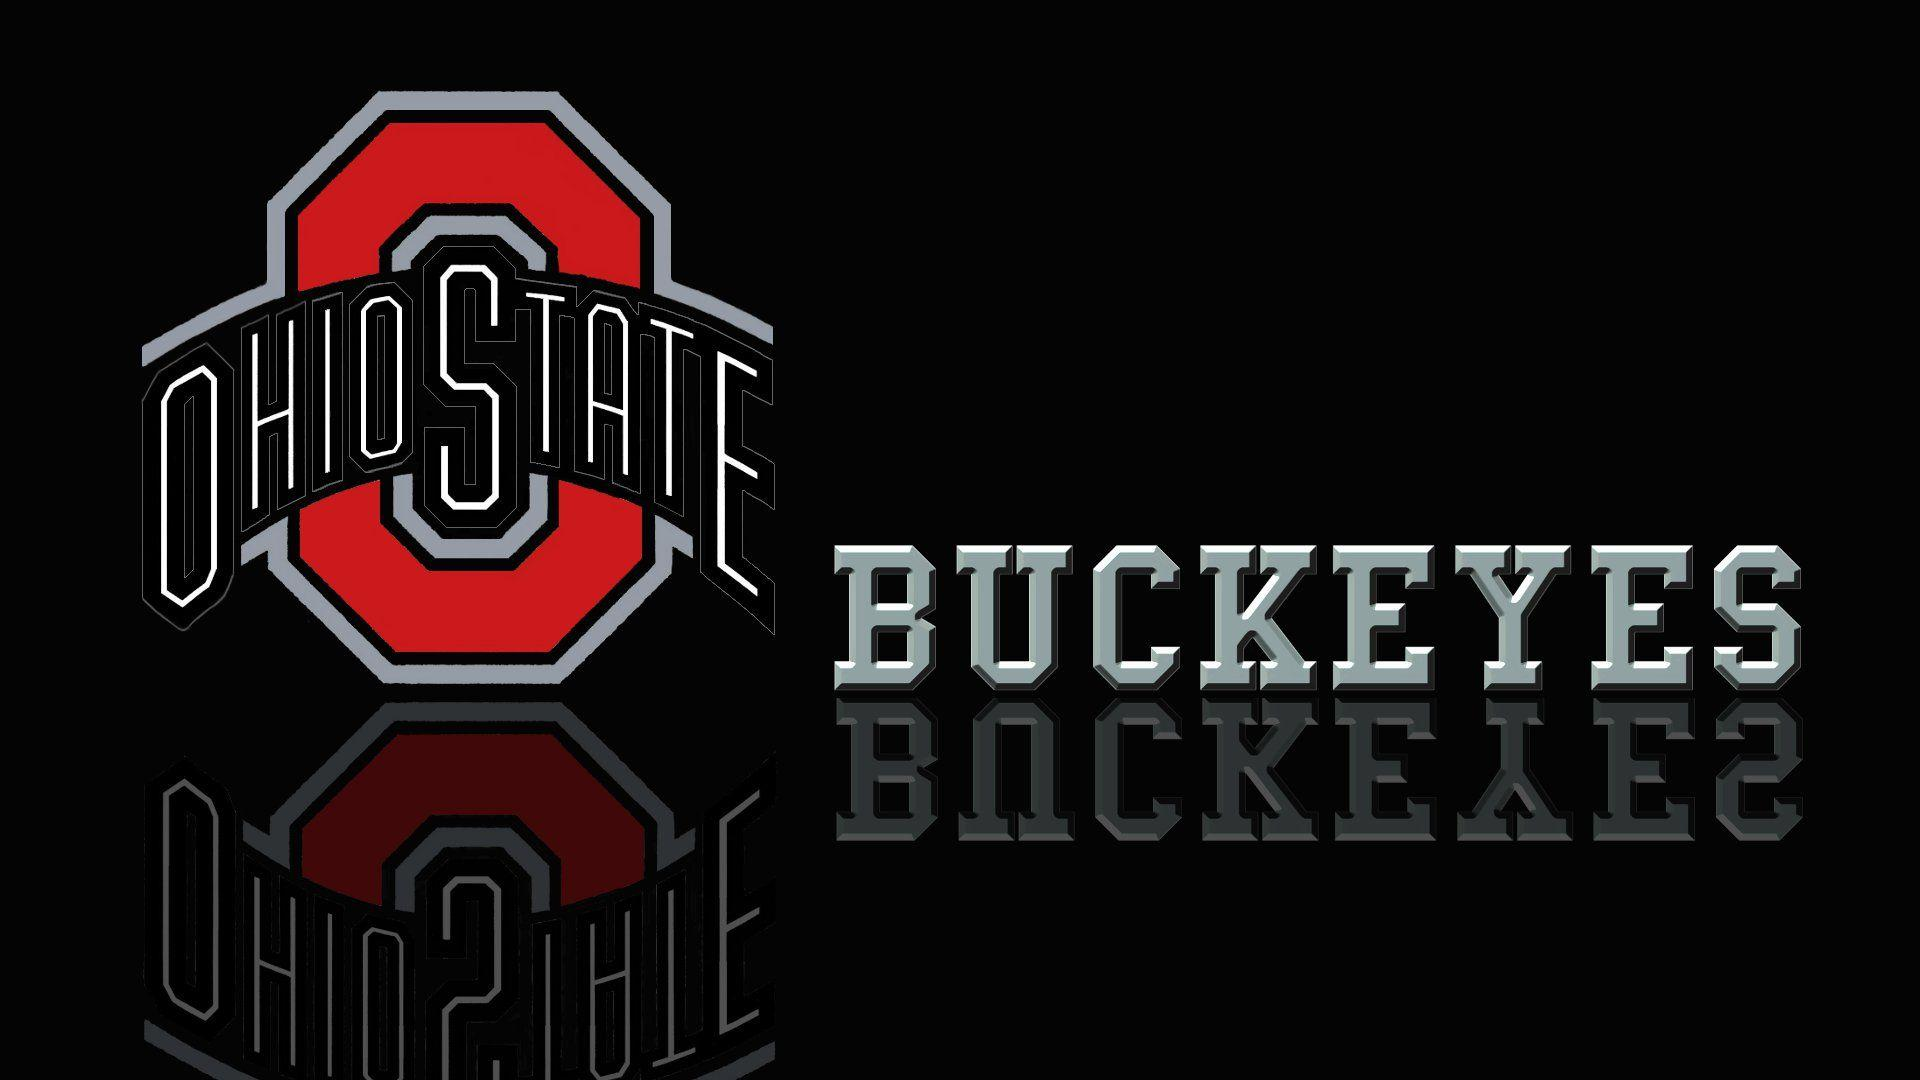 Ohio state football wallpapers wallpaper cave osu wallpaper ohio state football wallpaper 29007985 fanpop voltagebd Gallery